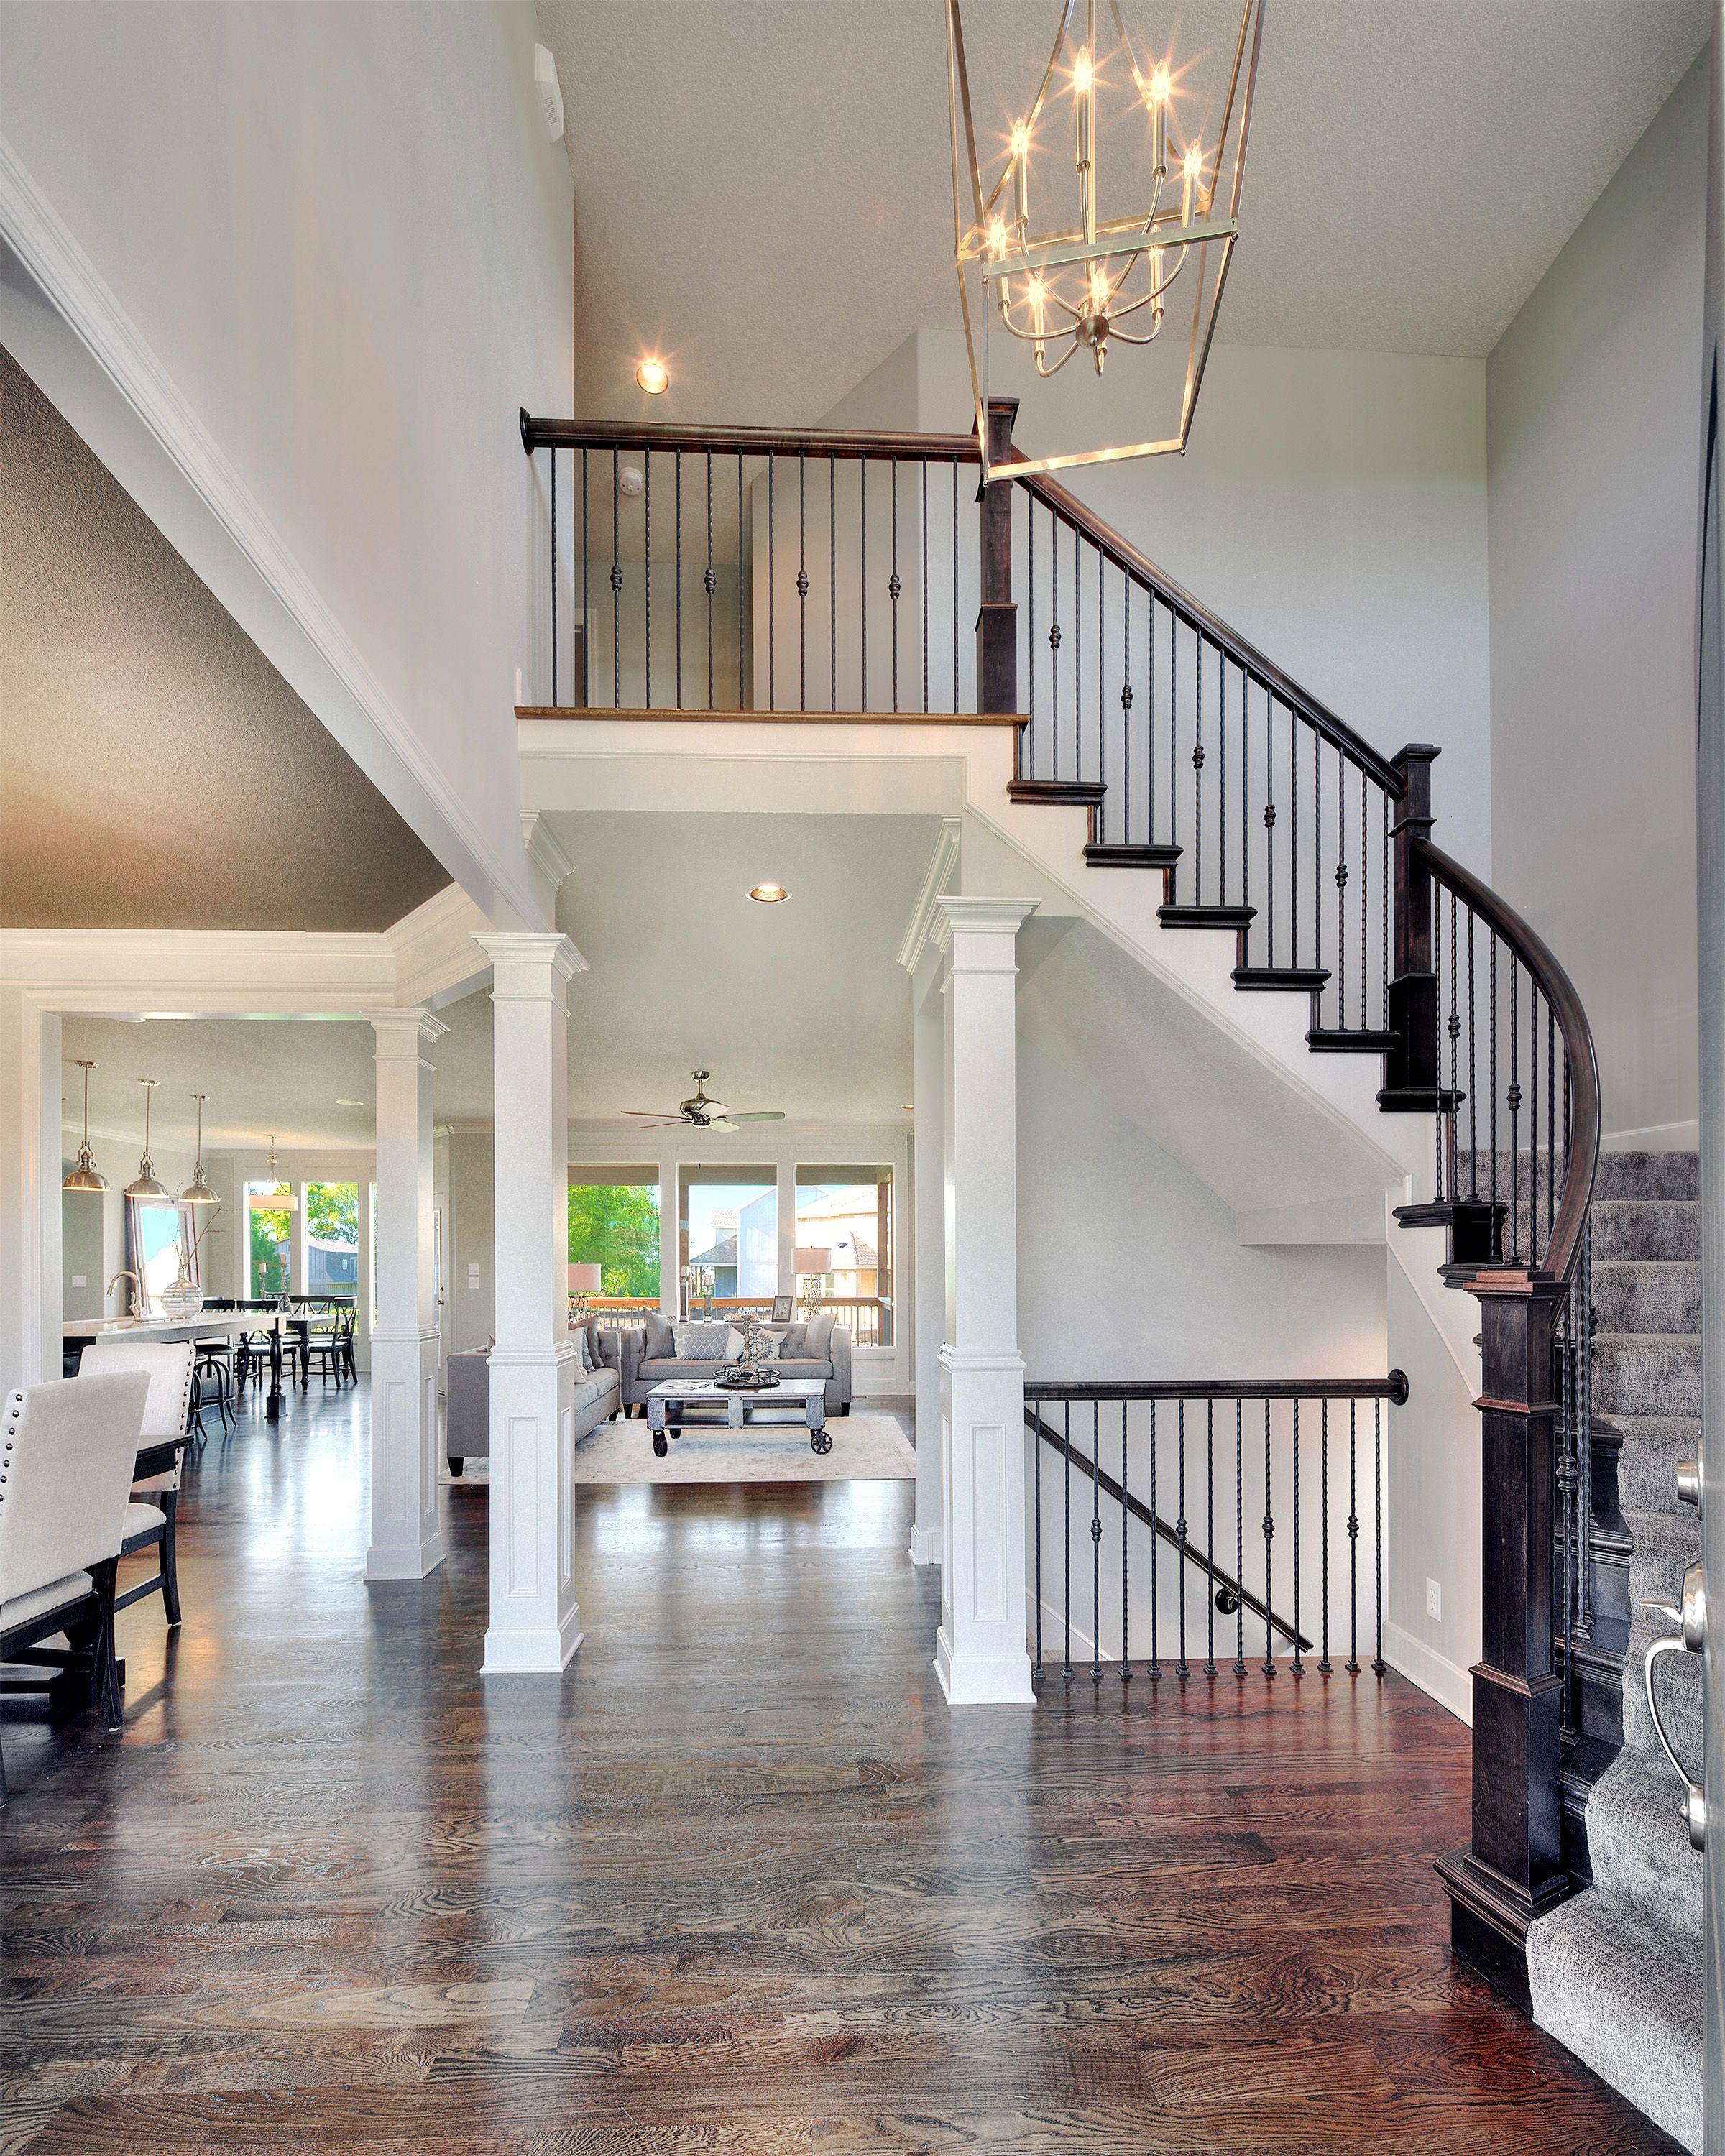 Entrance Foyer Circulation And Balcony In A House : Story entry way new home interior design open floor